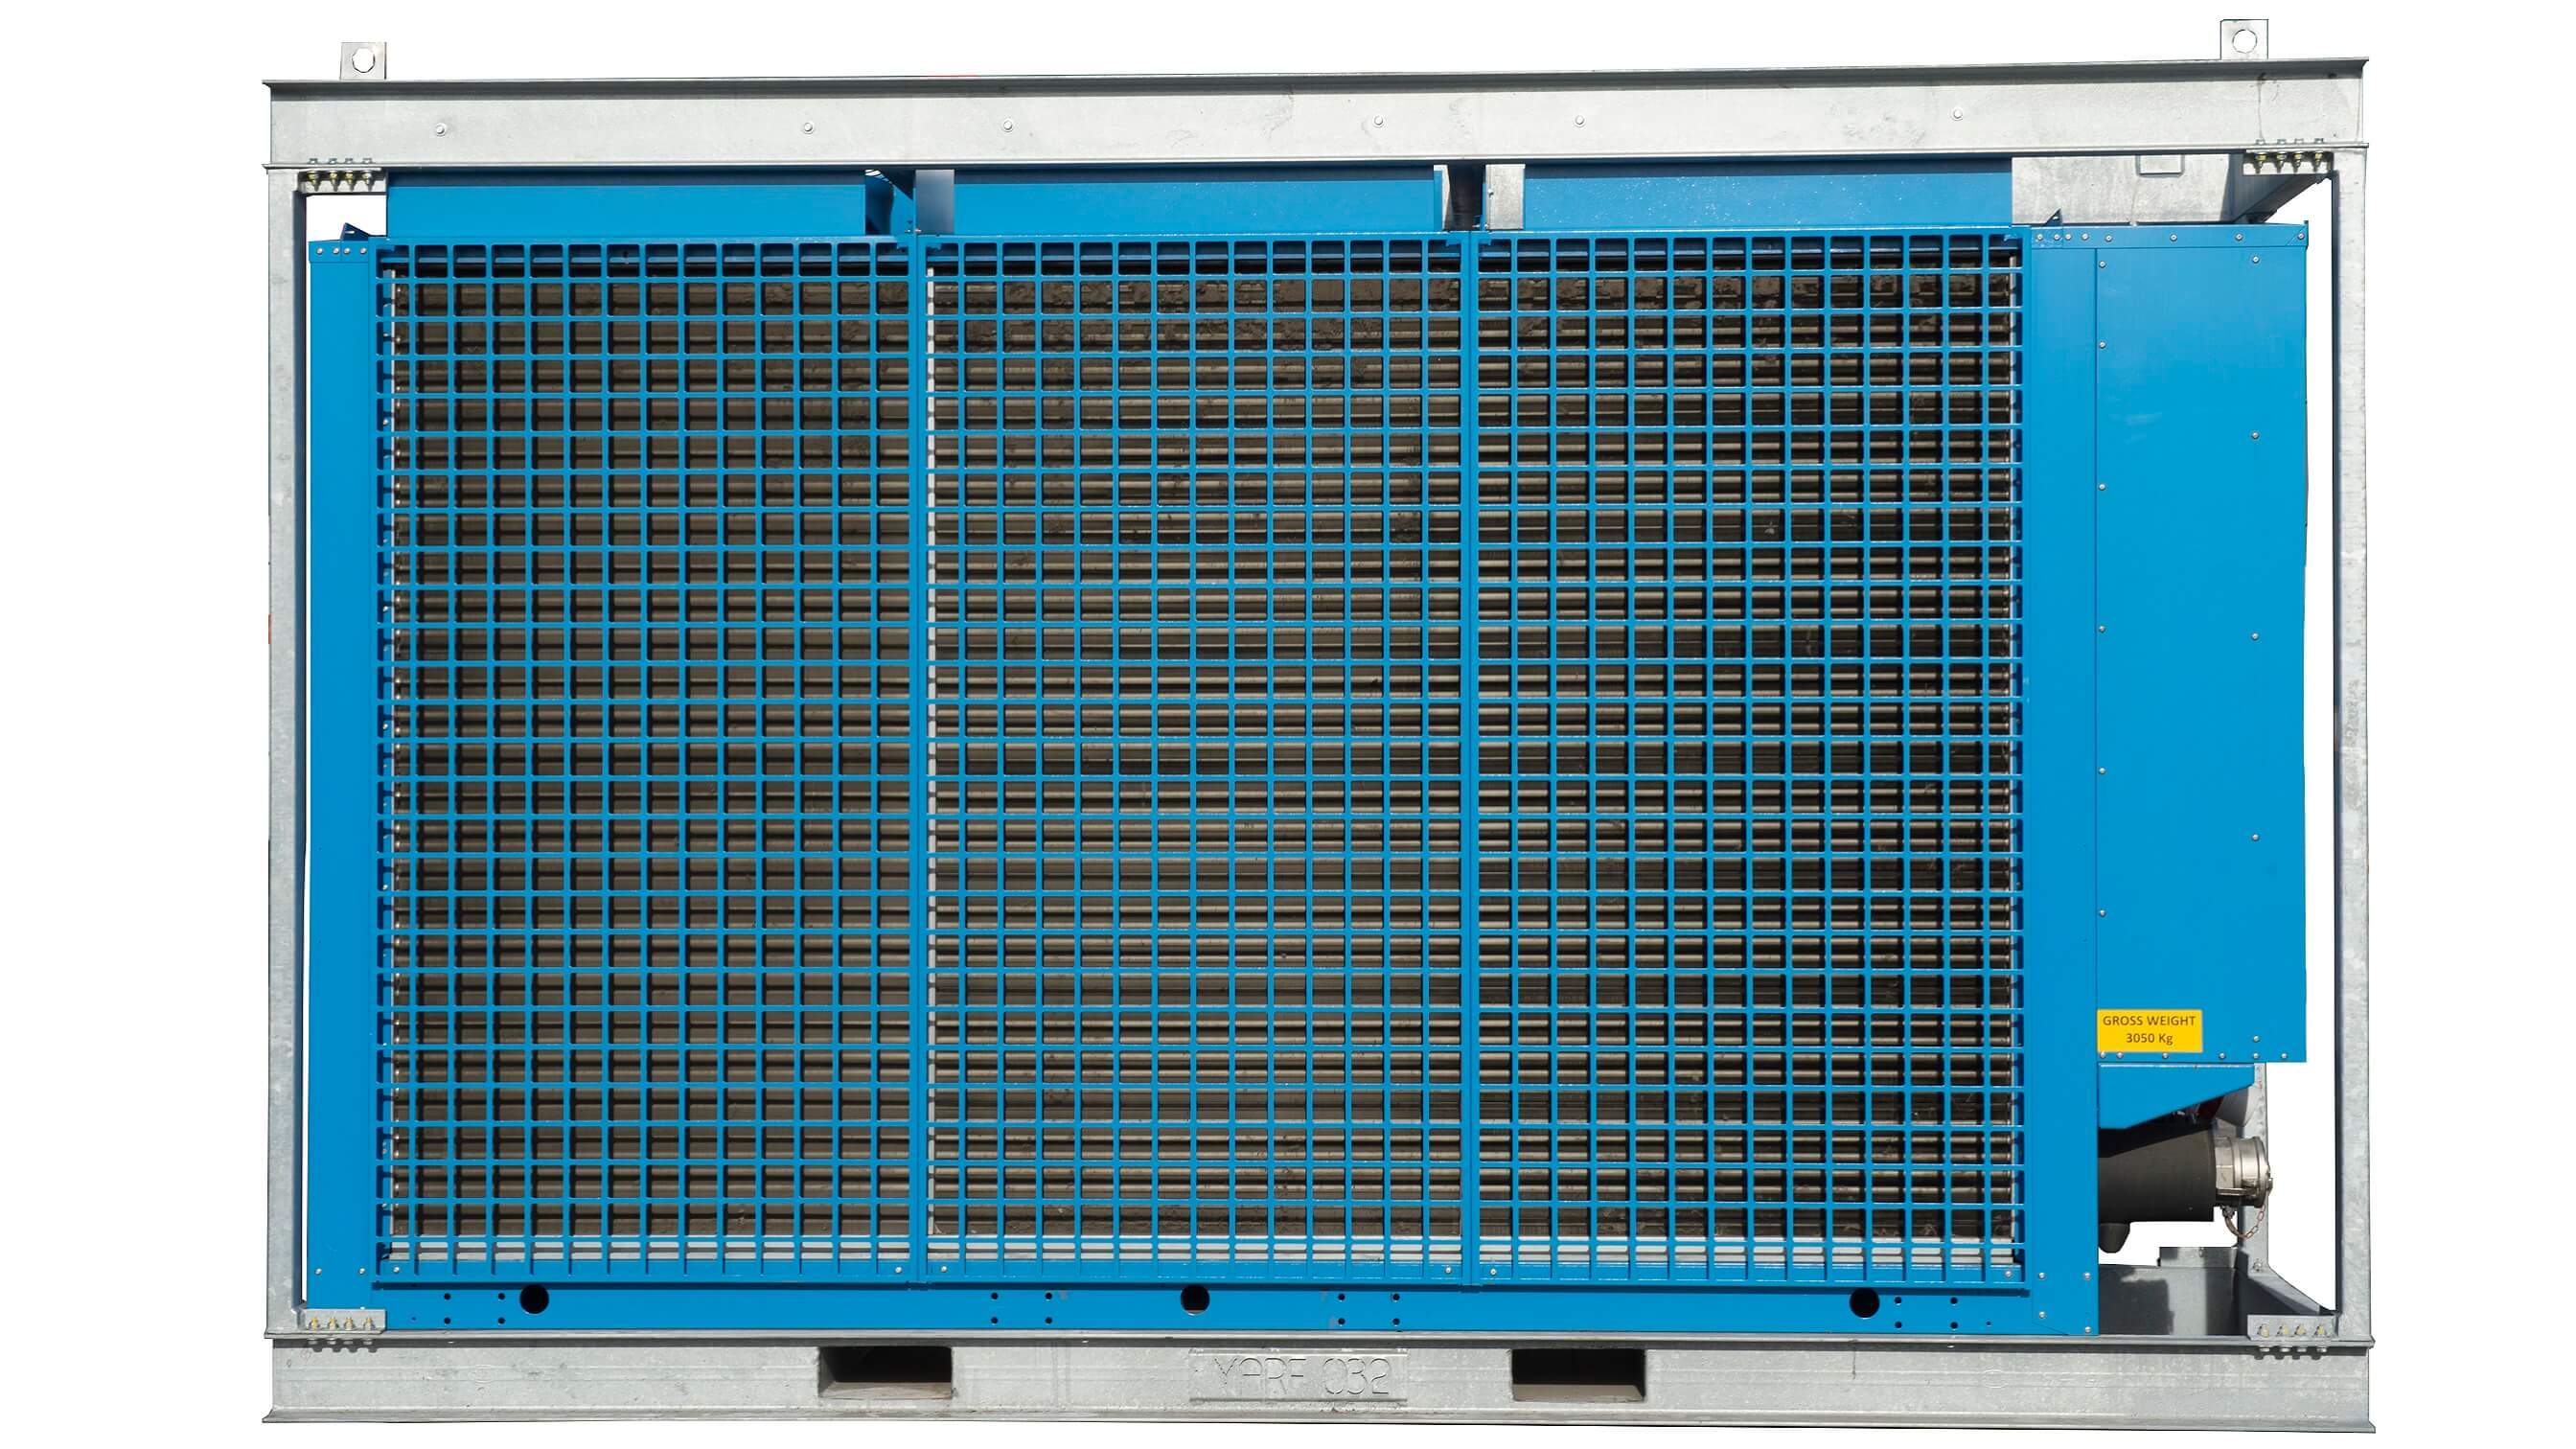 50 kW Low Temperature Chiller